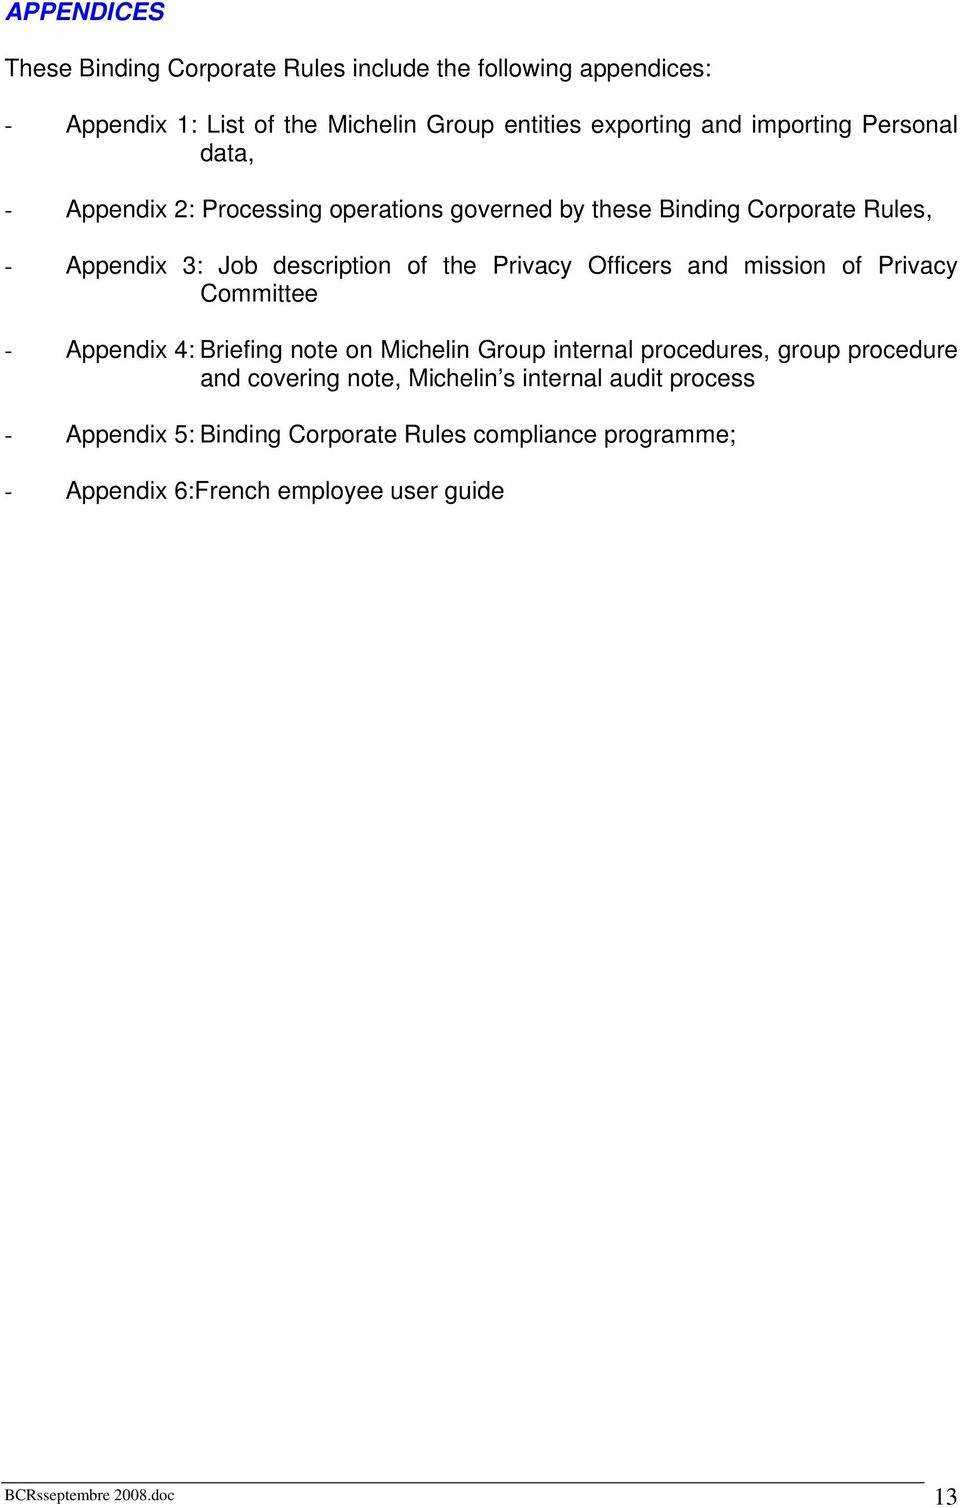 Privacy Officers and mission of Privacy Committee - Appendix 4: Briefing note on Michelin Group internal procedures, group procedure and covering